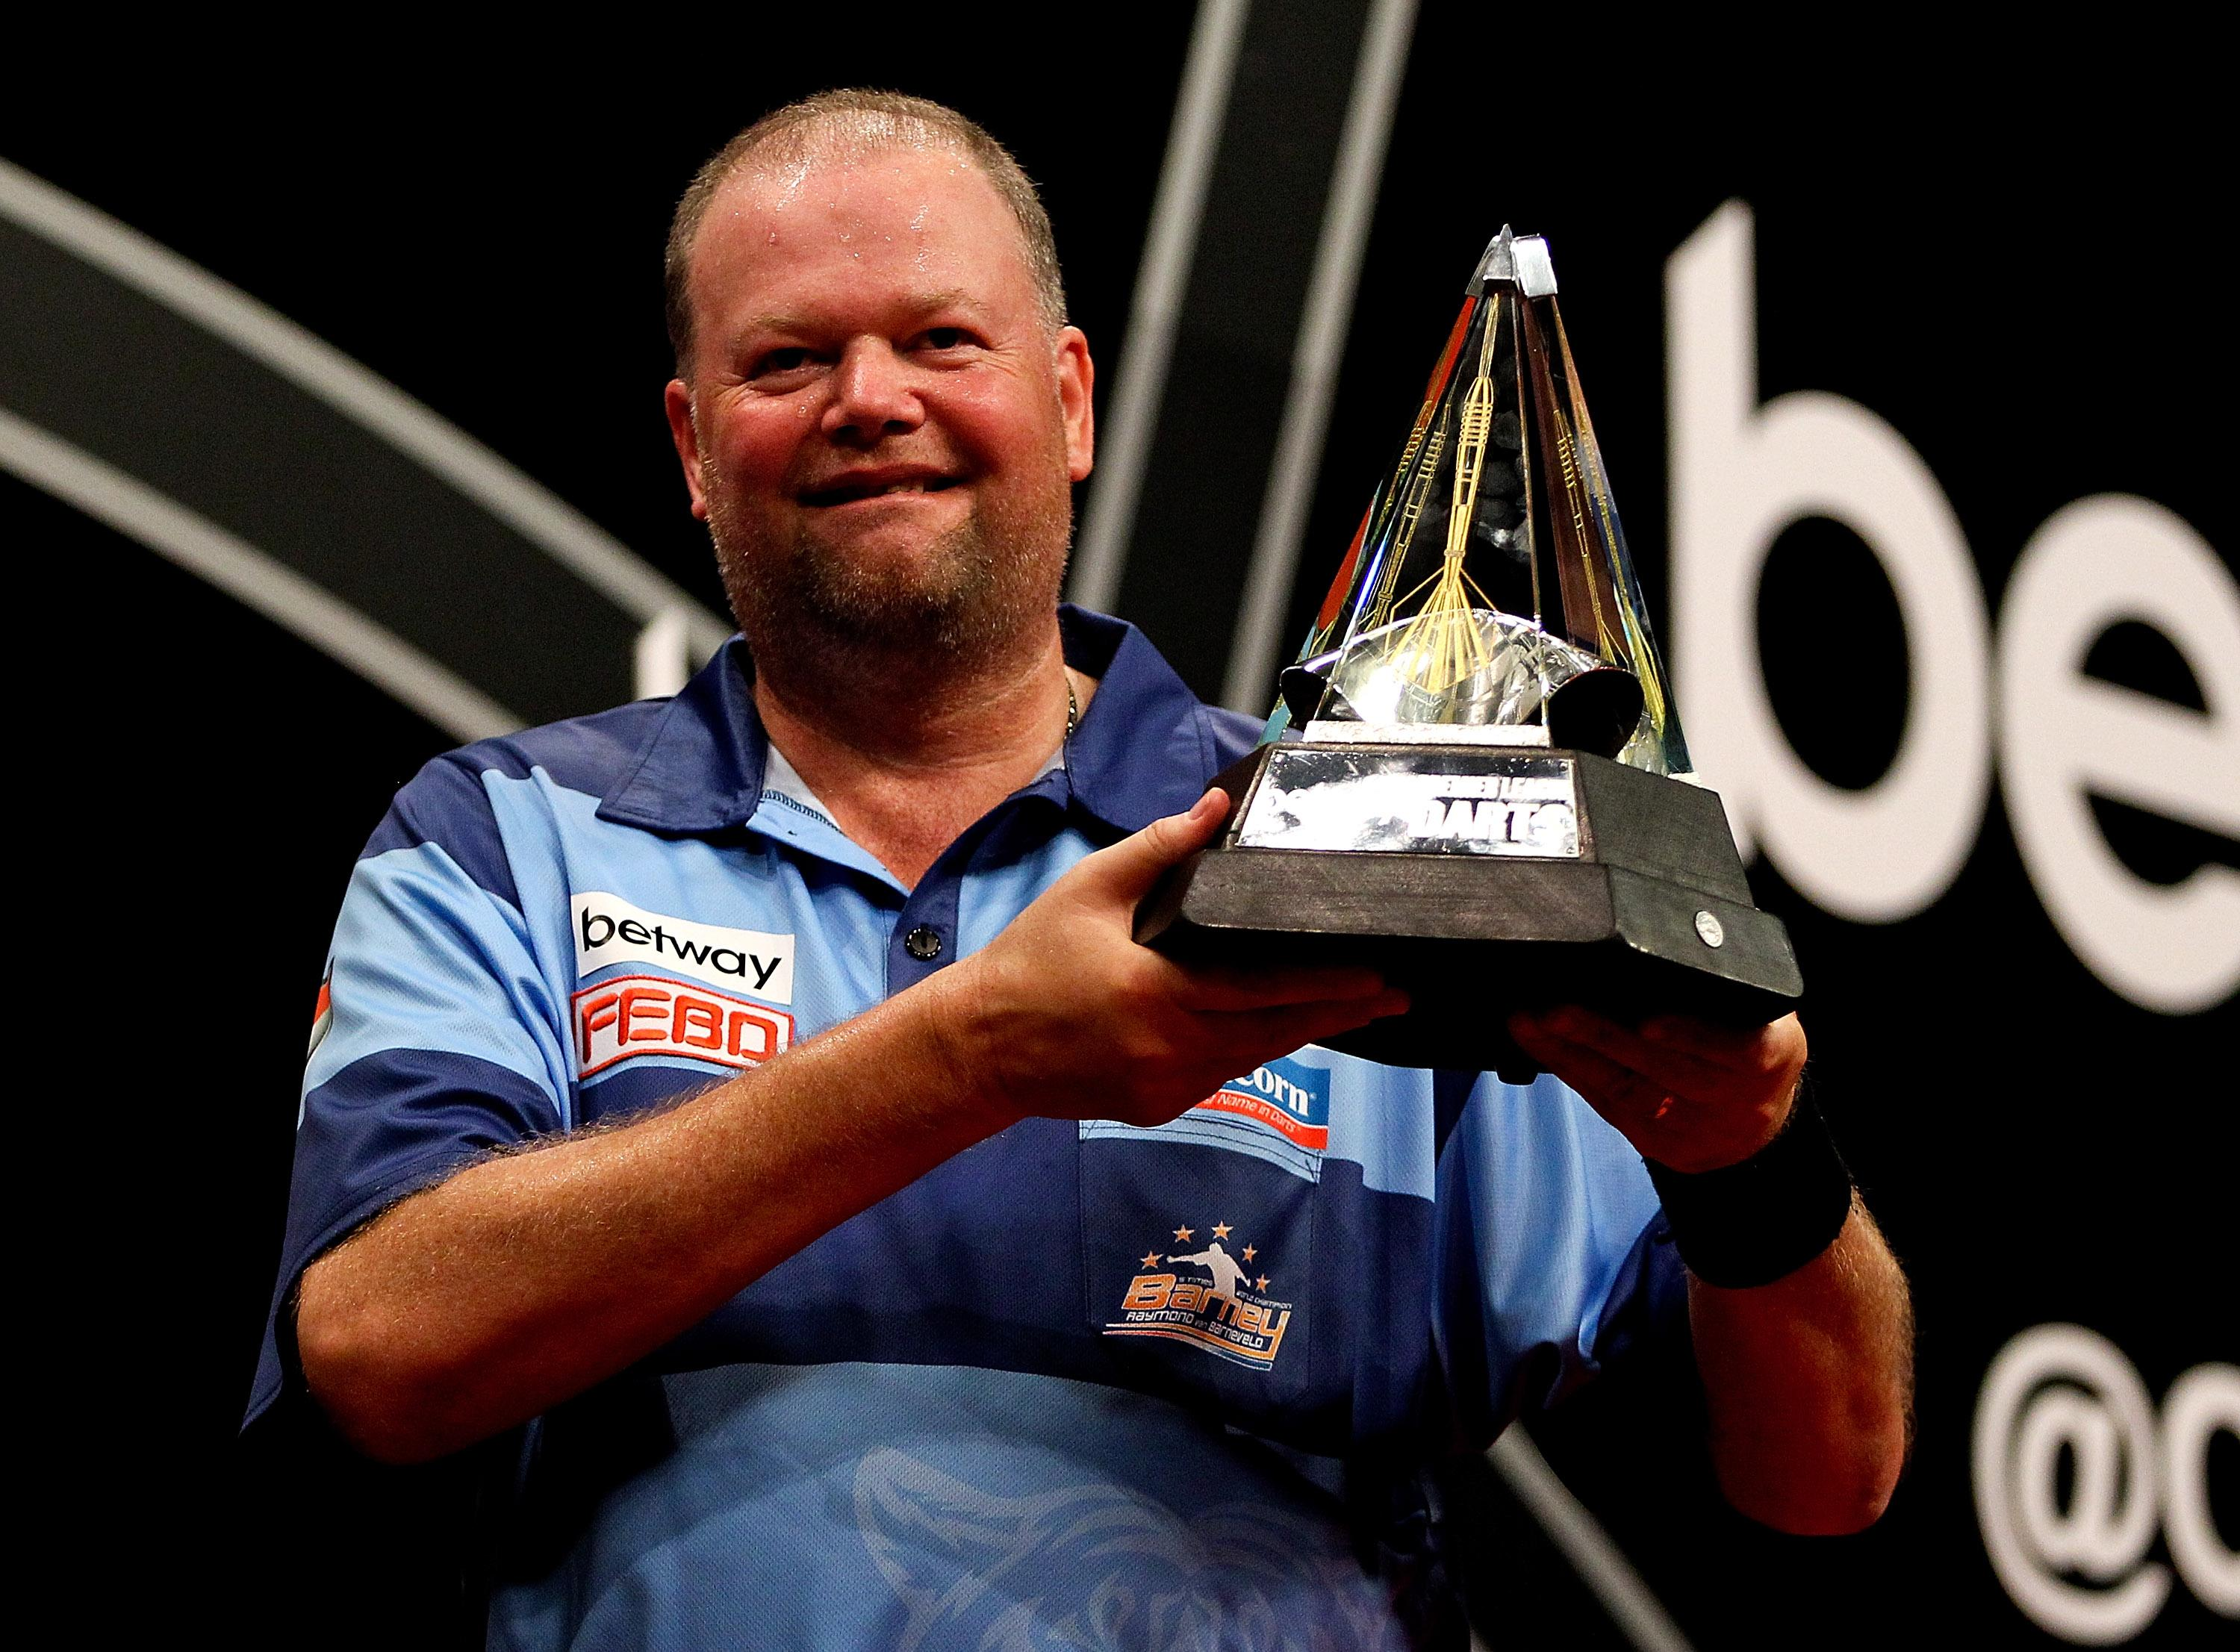 Raymond van Barneveld has revealed he will retire after the 2019/2020 World Championship